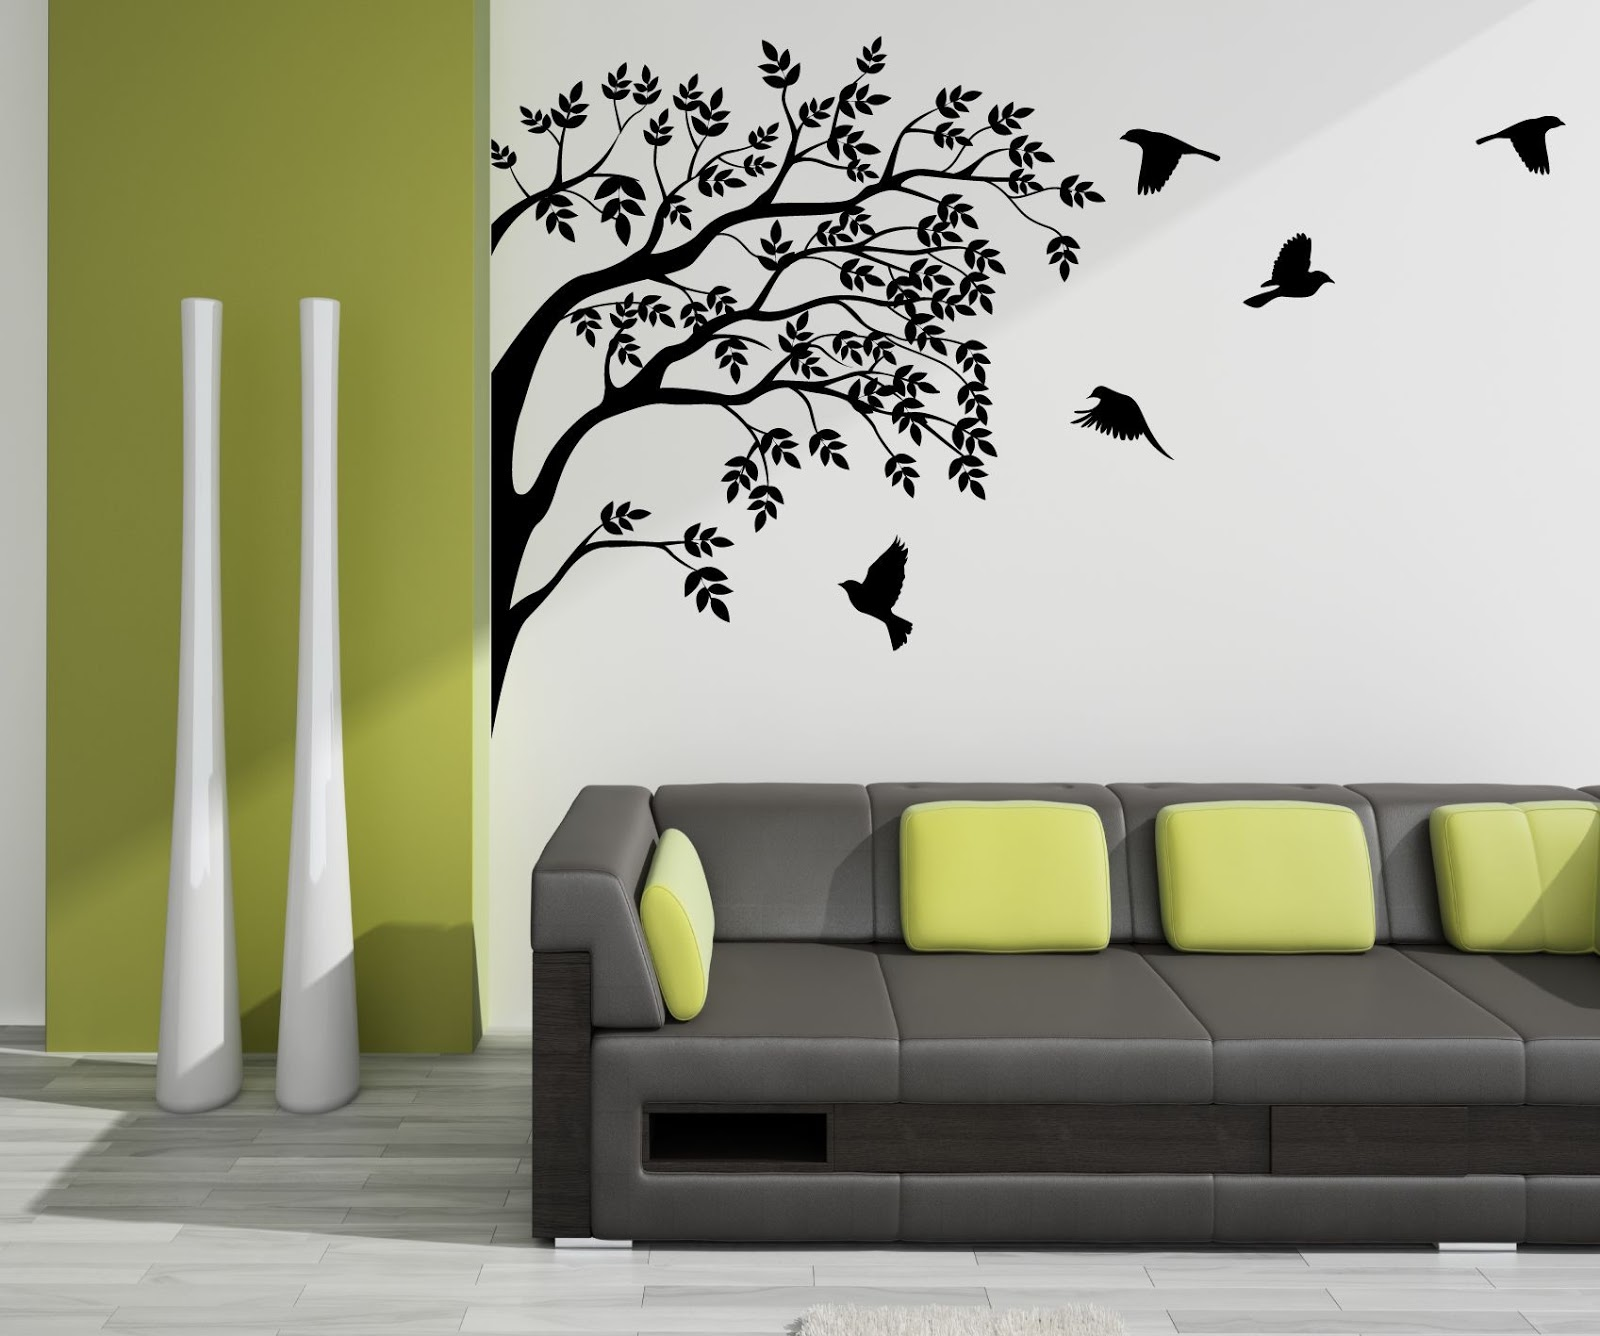 Wall Design Pic : Vinyl wall designs services